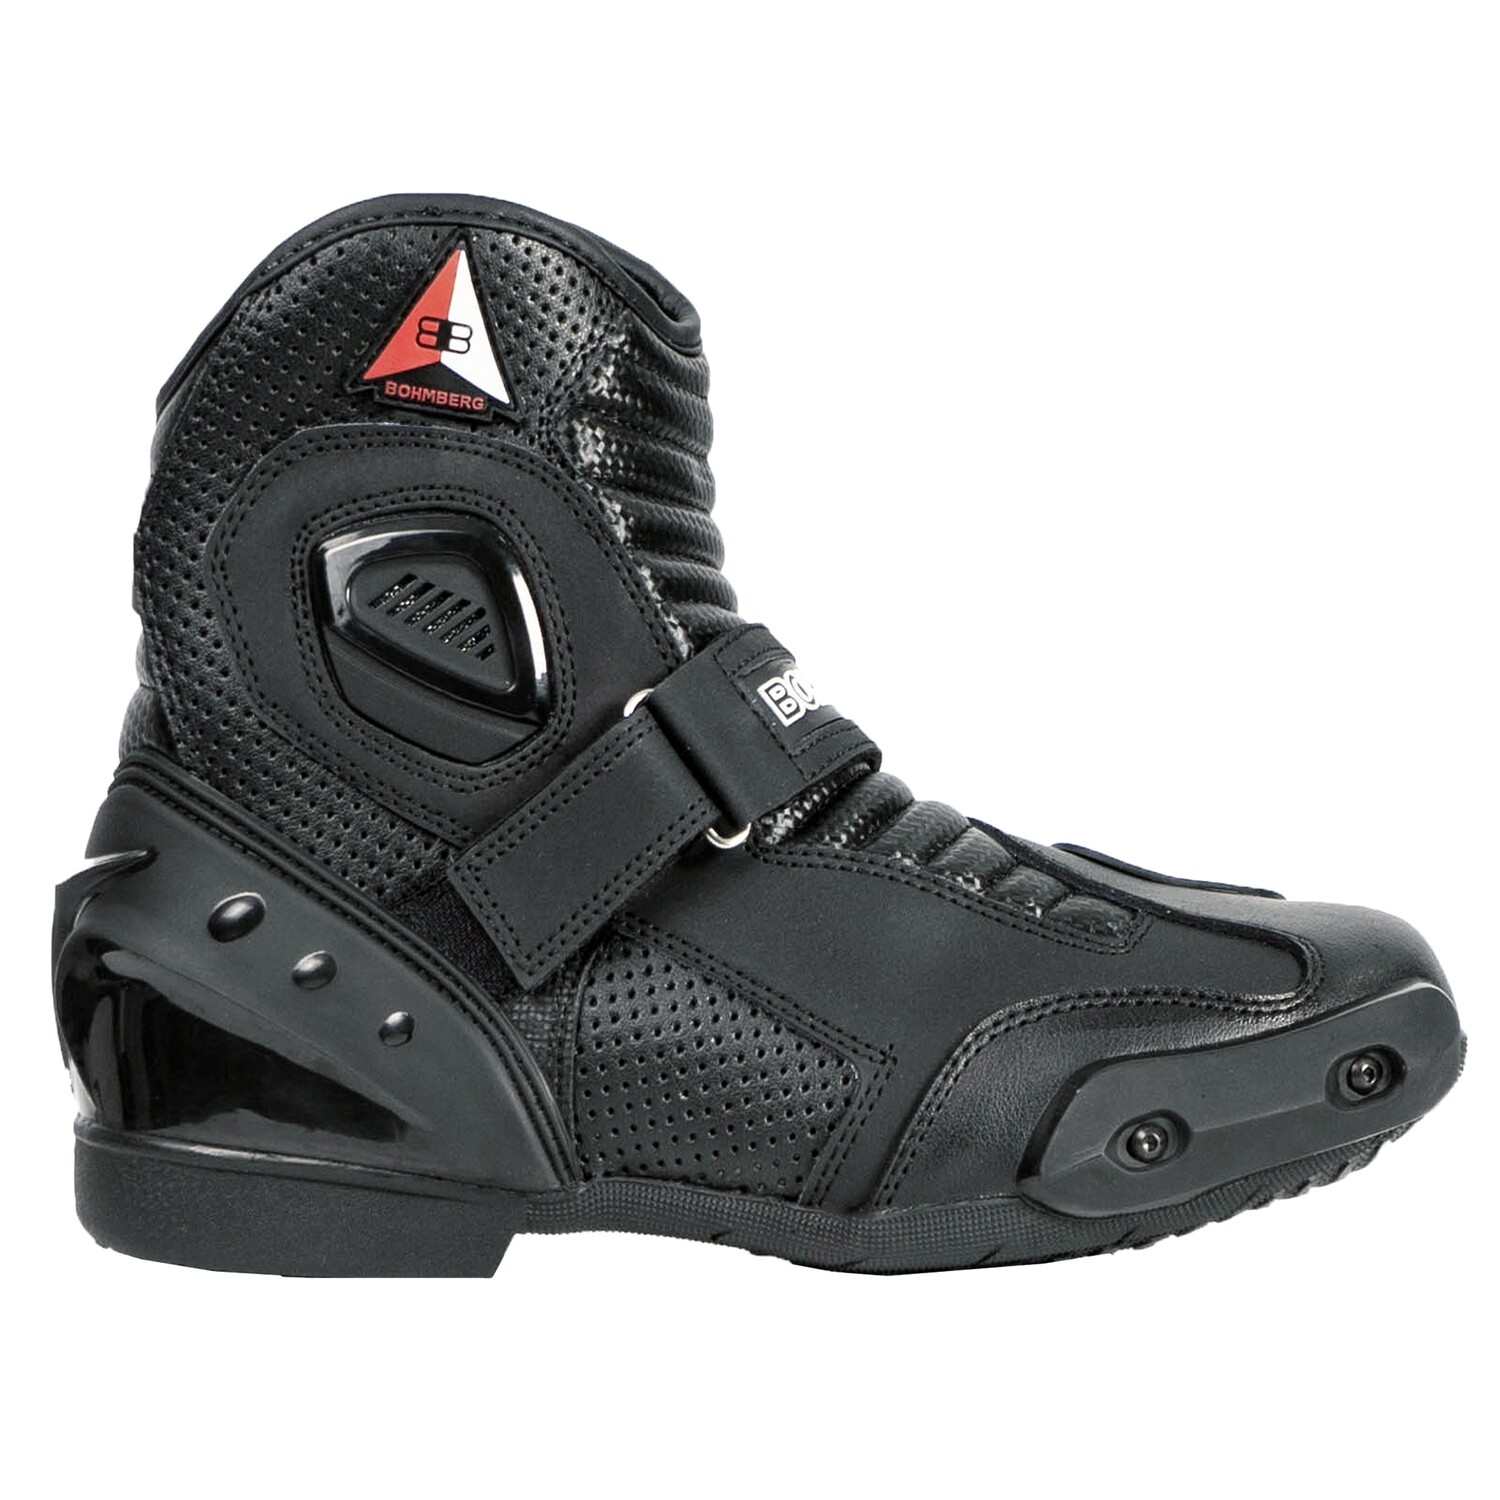 Bohmberg® AUDAX Motorcycle Boots made of sturdy Leather with attached Hard Shell Protectors